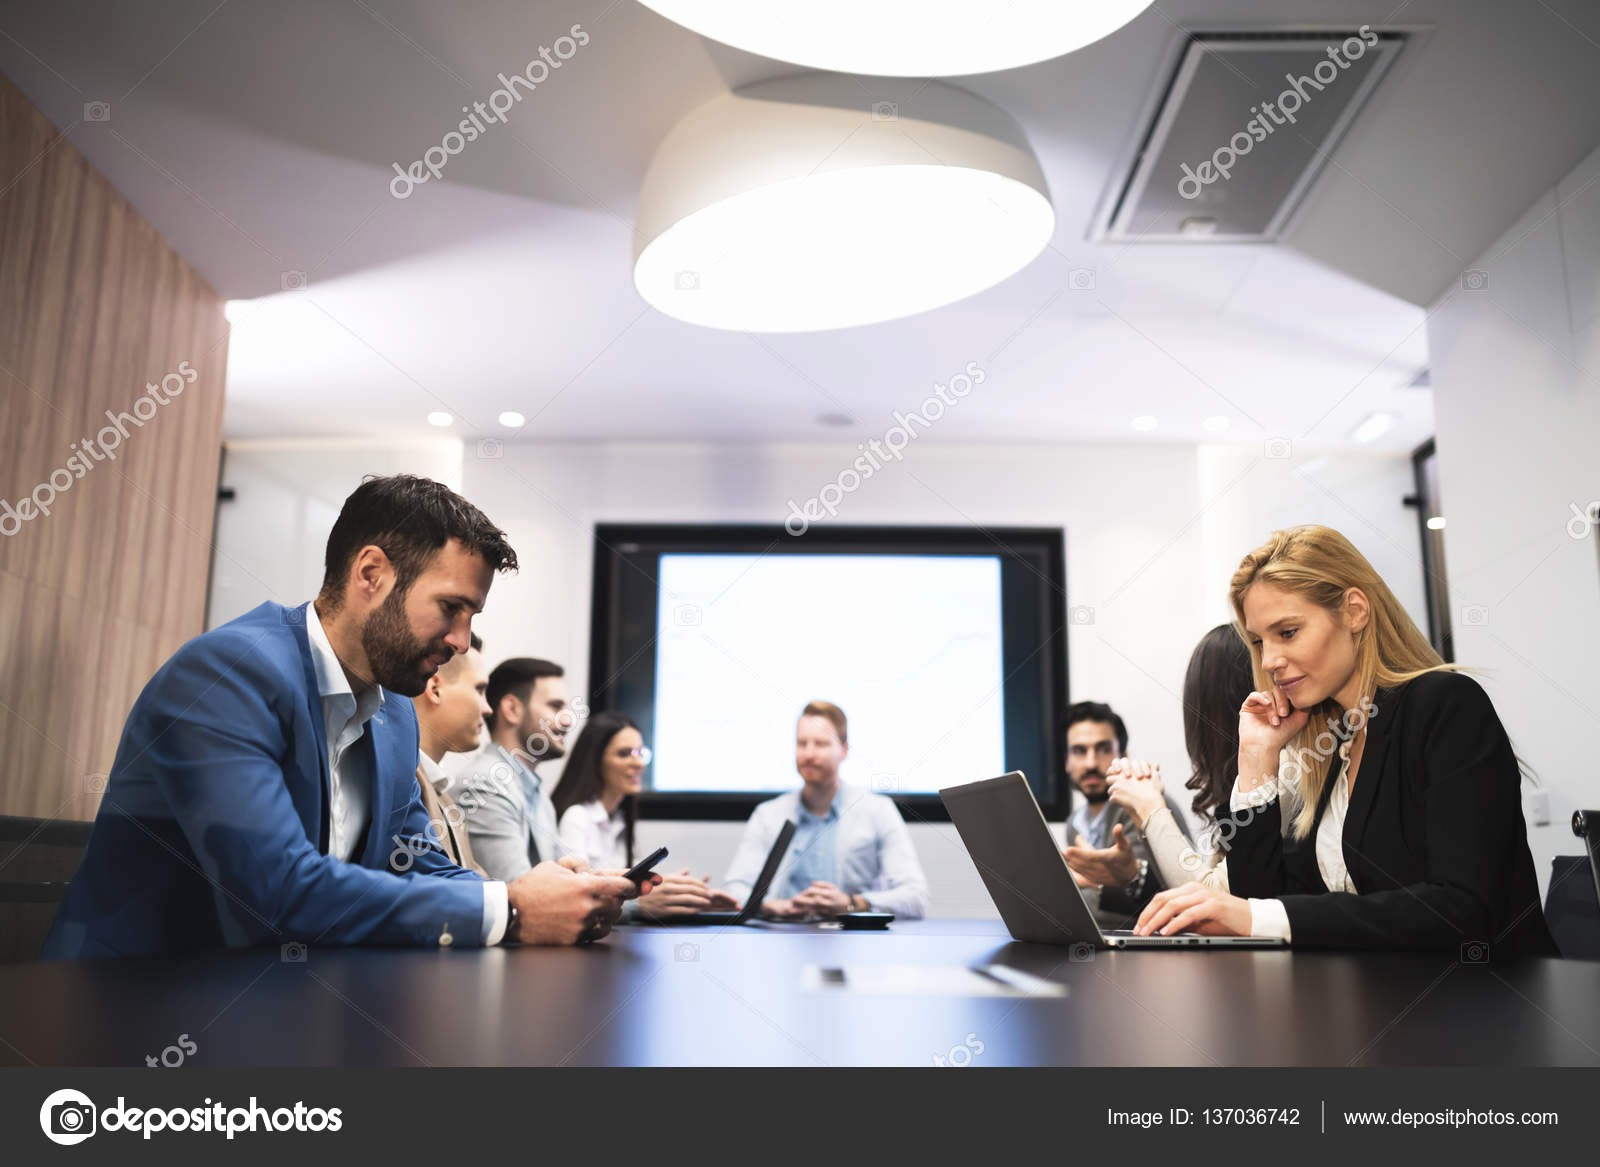 At Meeting or In Meeting Unique Business Meeting In Modern Conference Room — Stock